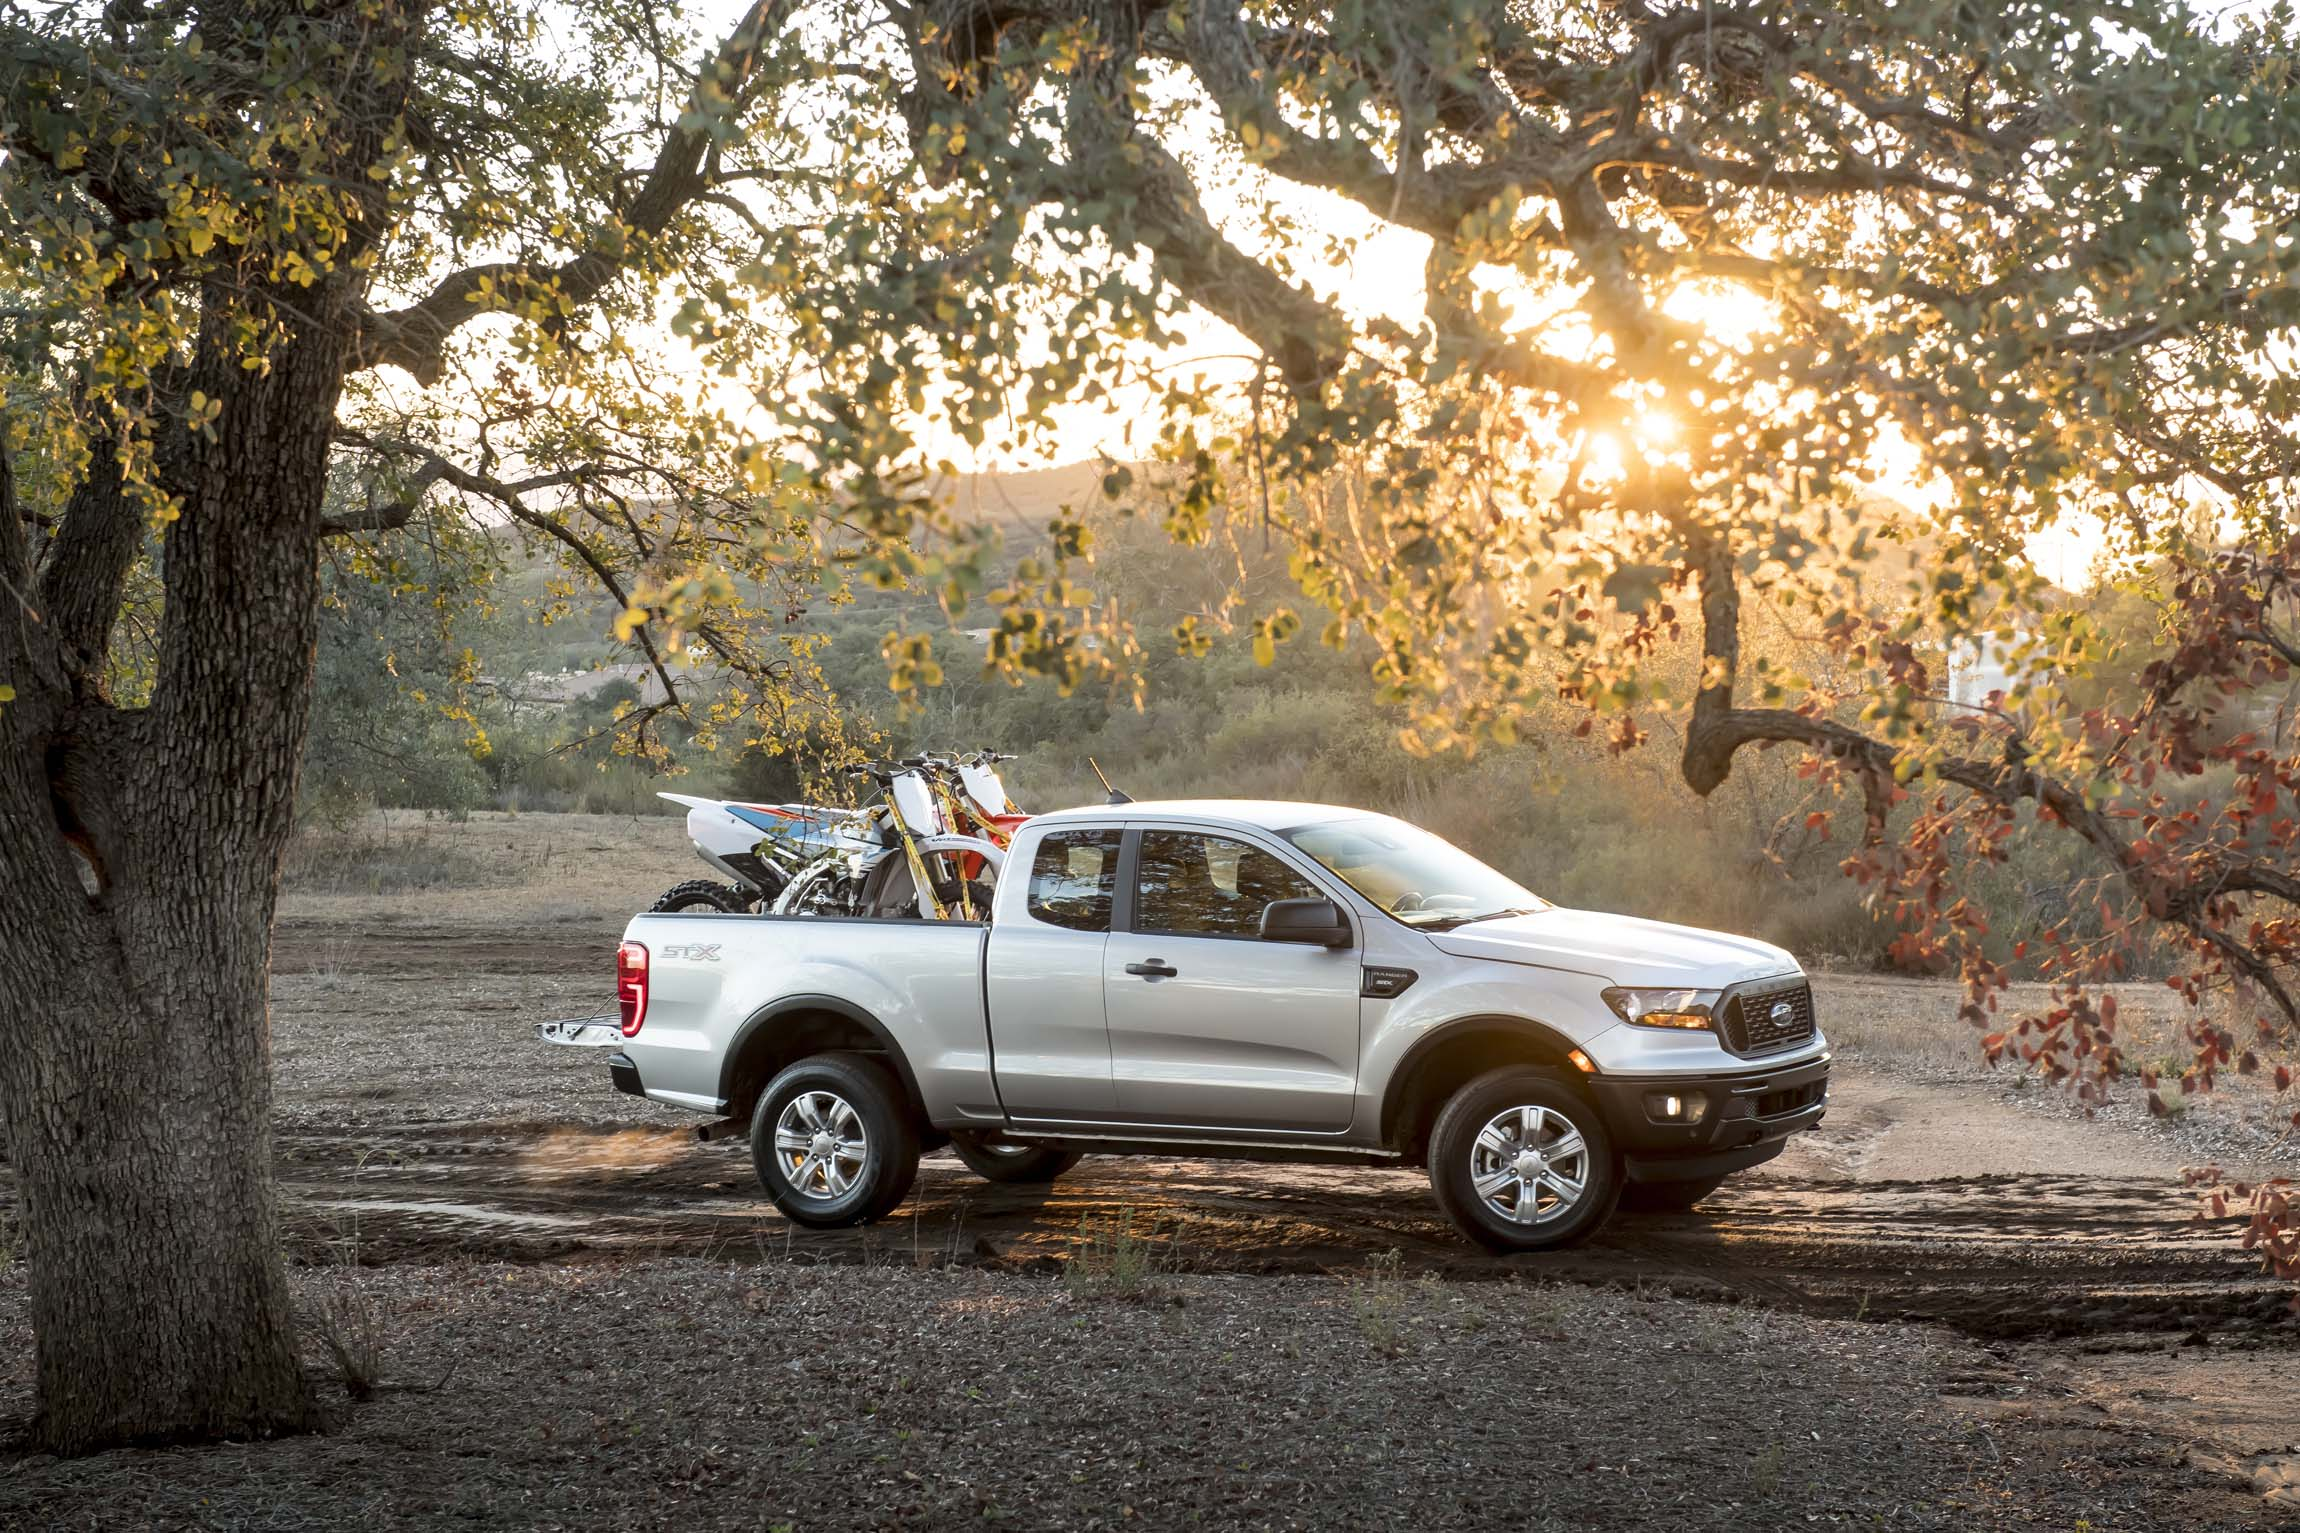 2019 Ford Ranger first drive review: The global pickup ...